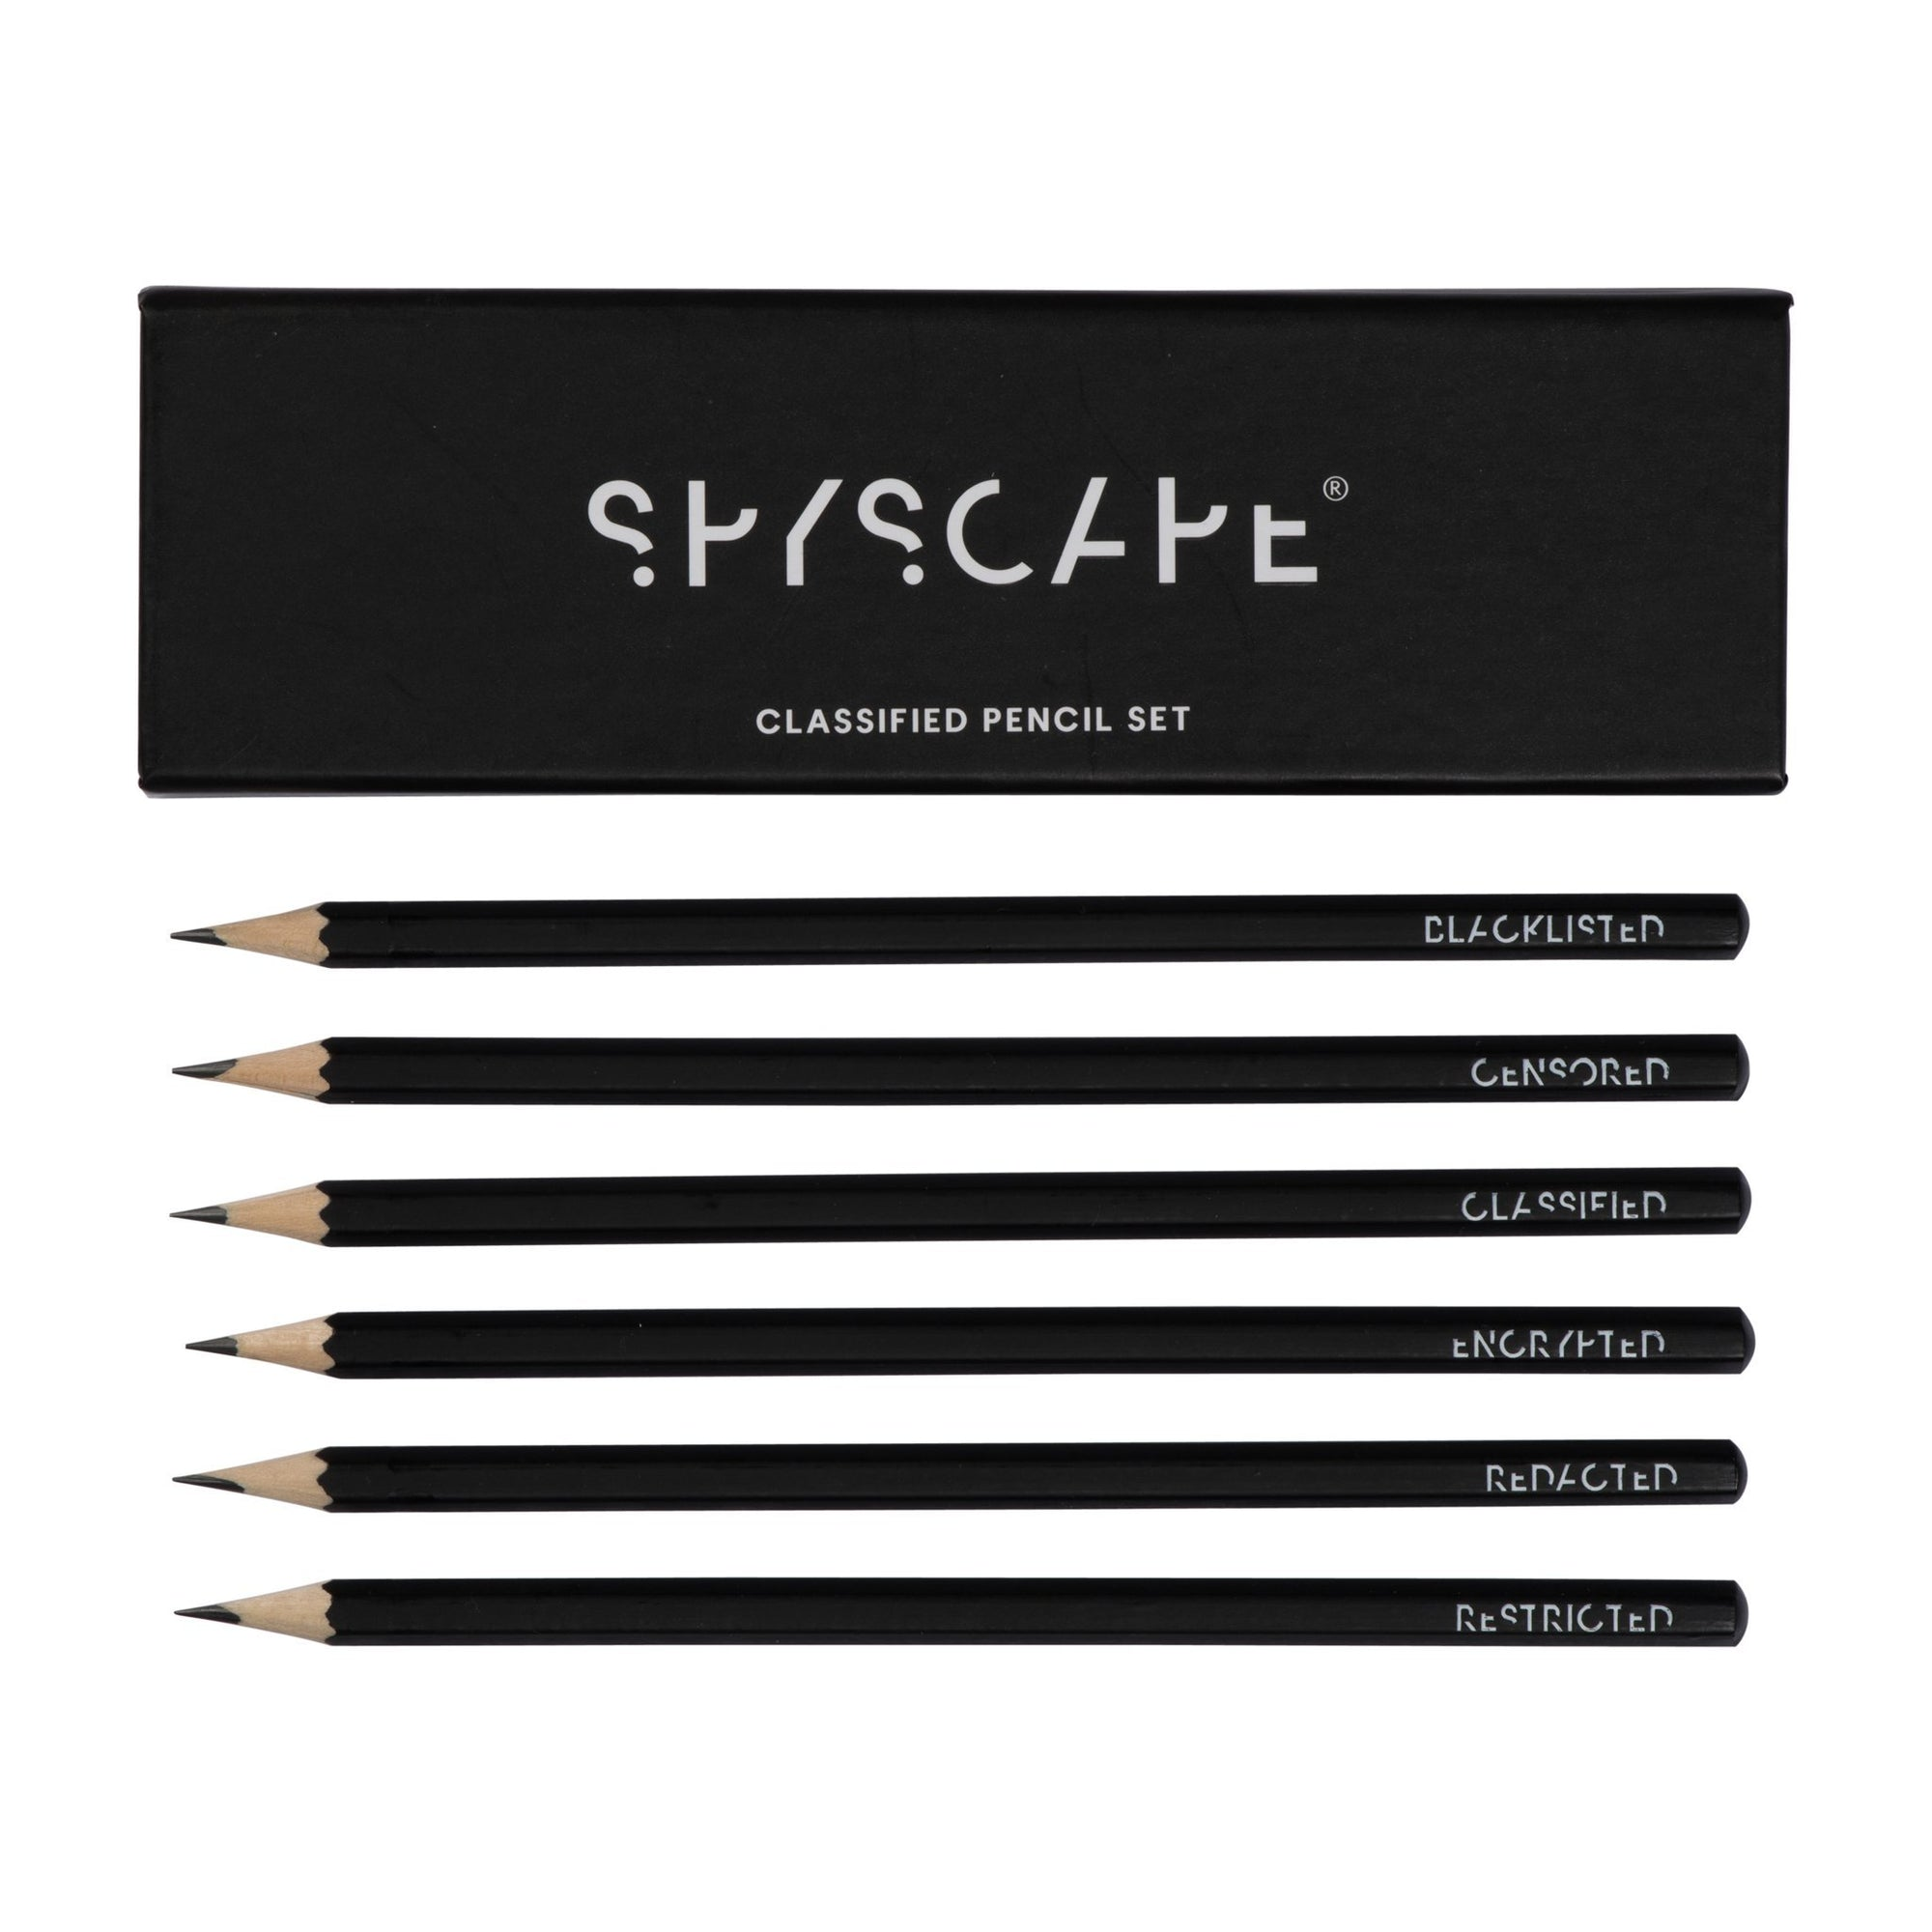 SPYSCAPE Classified Pencil Set